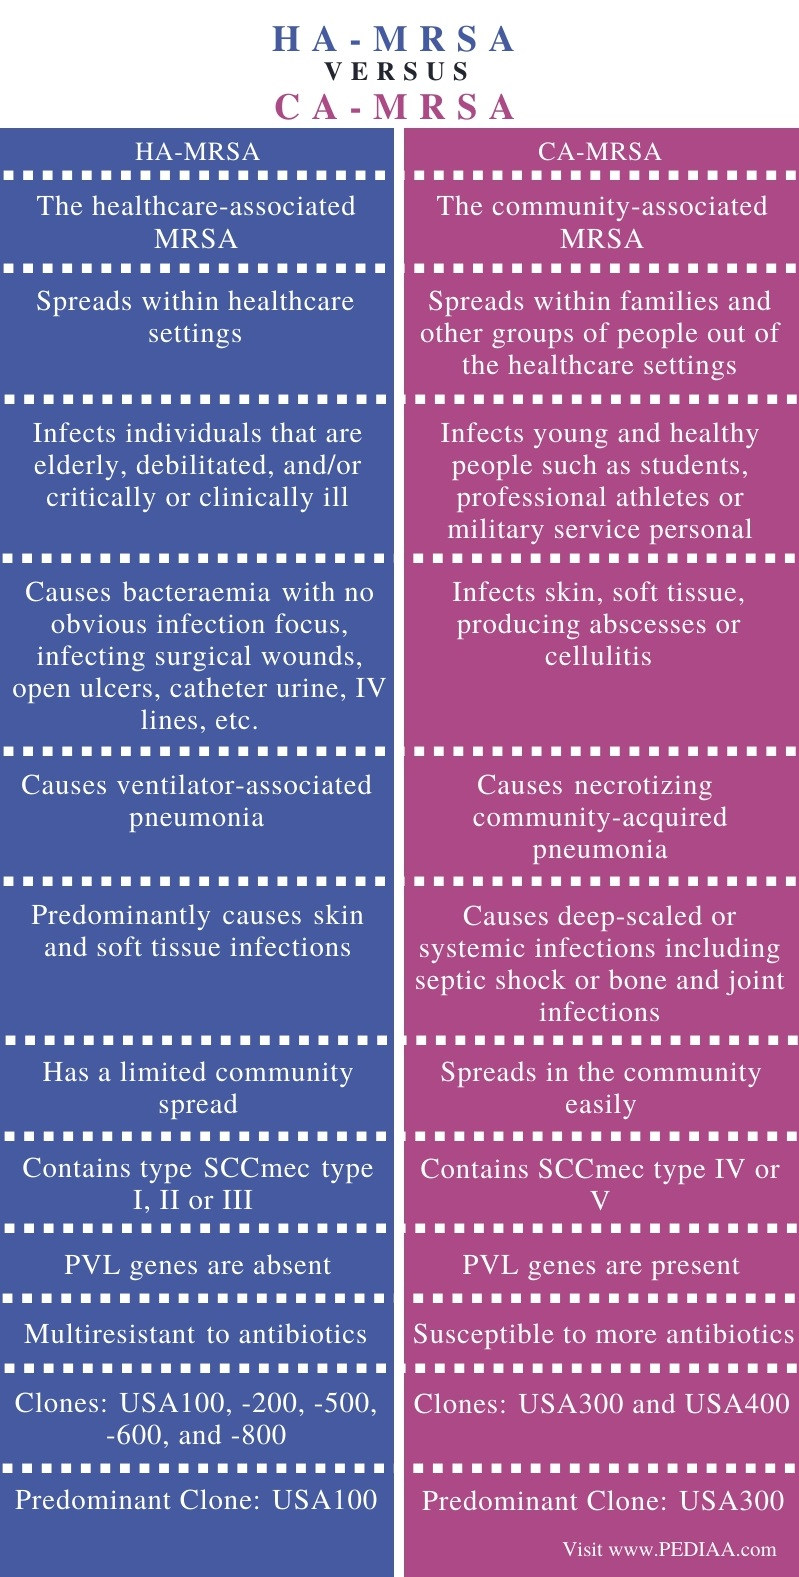 Difference Between HA-MRSA and CA-MRSA - Comparison Summary